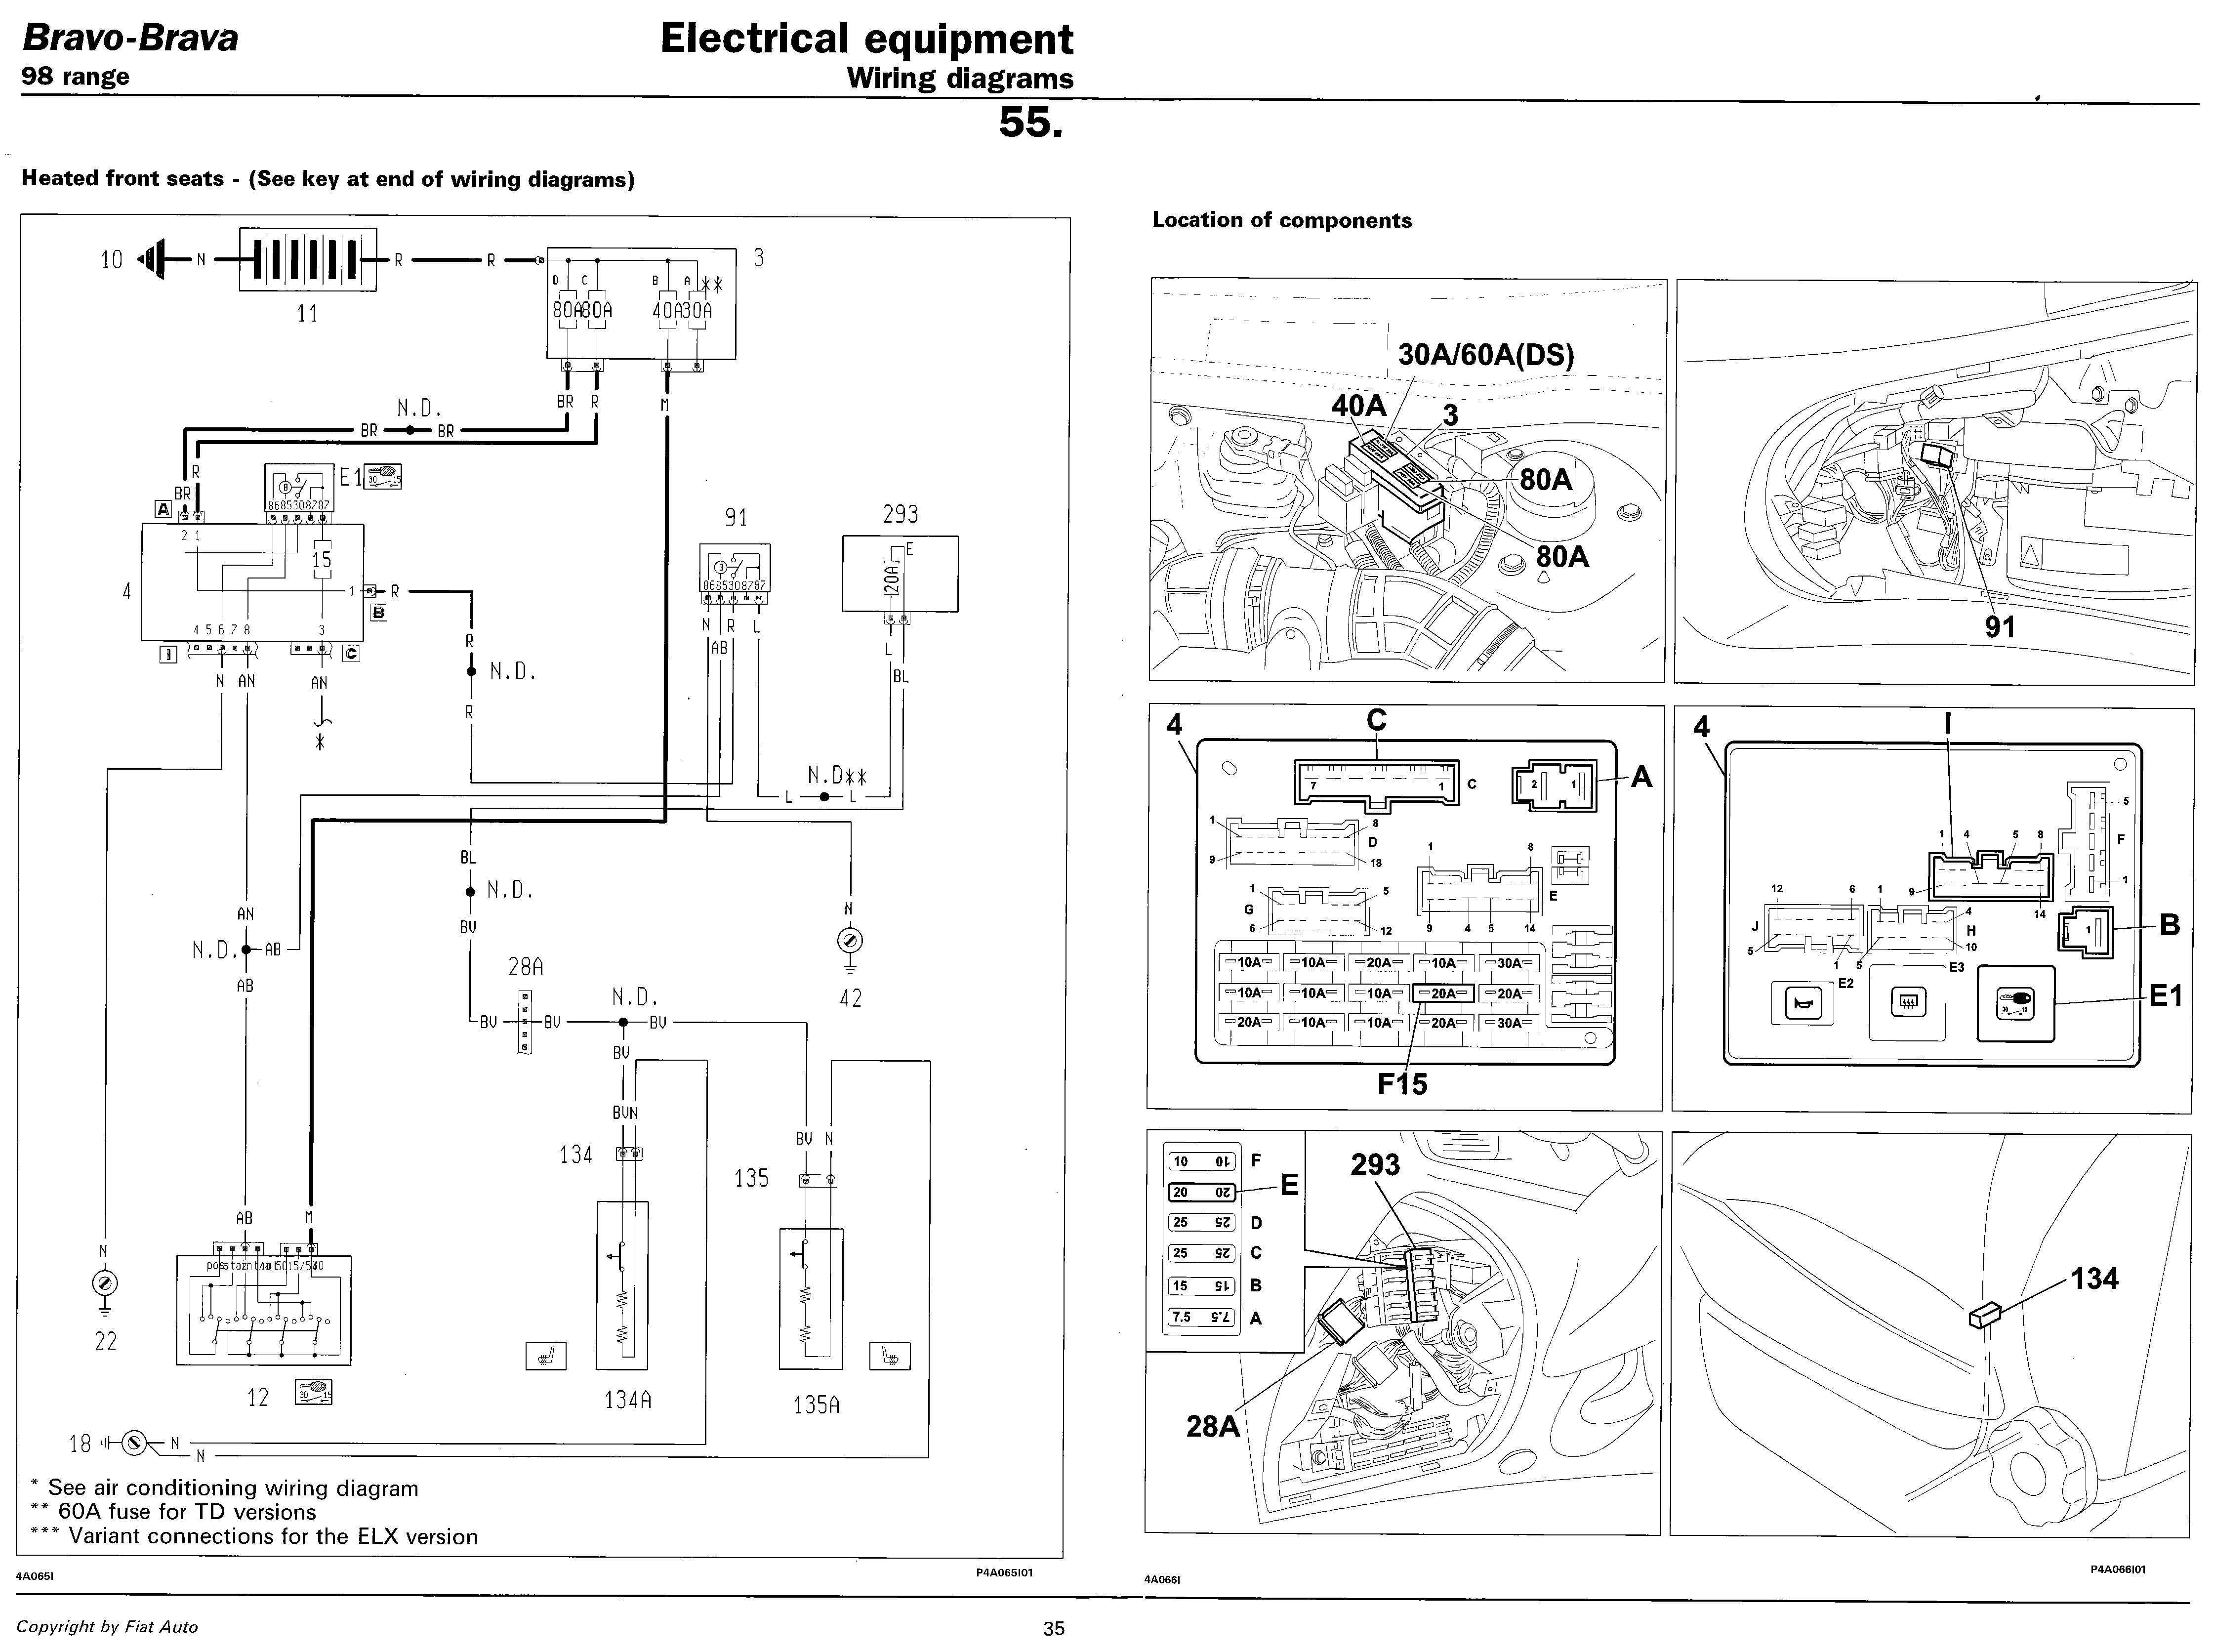 Remarkable Fiat Ulysse Wiring Diagrams Basic Electronics Wiring Diagram Wiring Cloud Onicaxeromohammedshrineorg